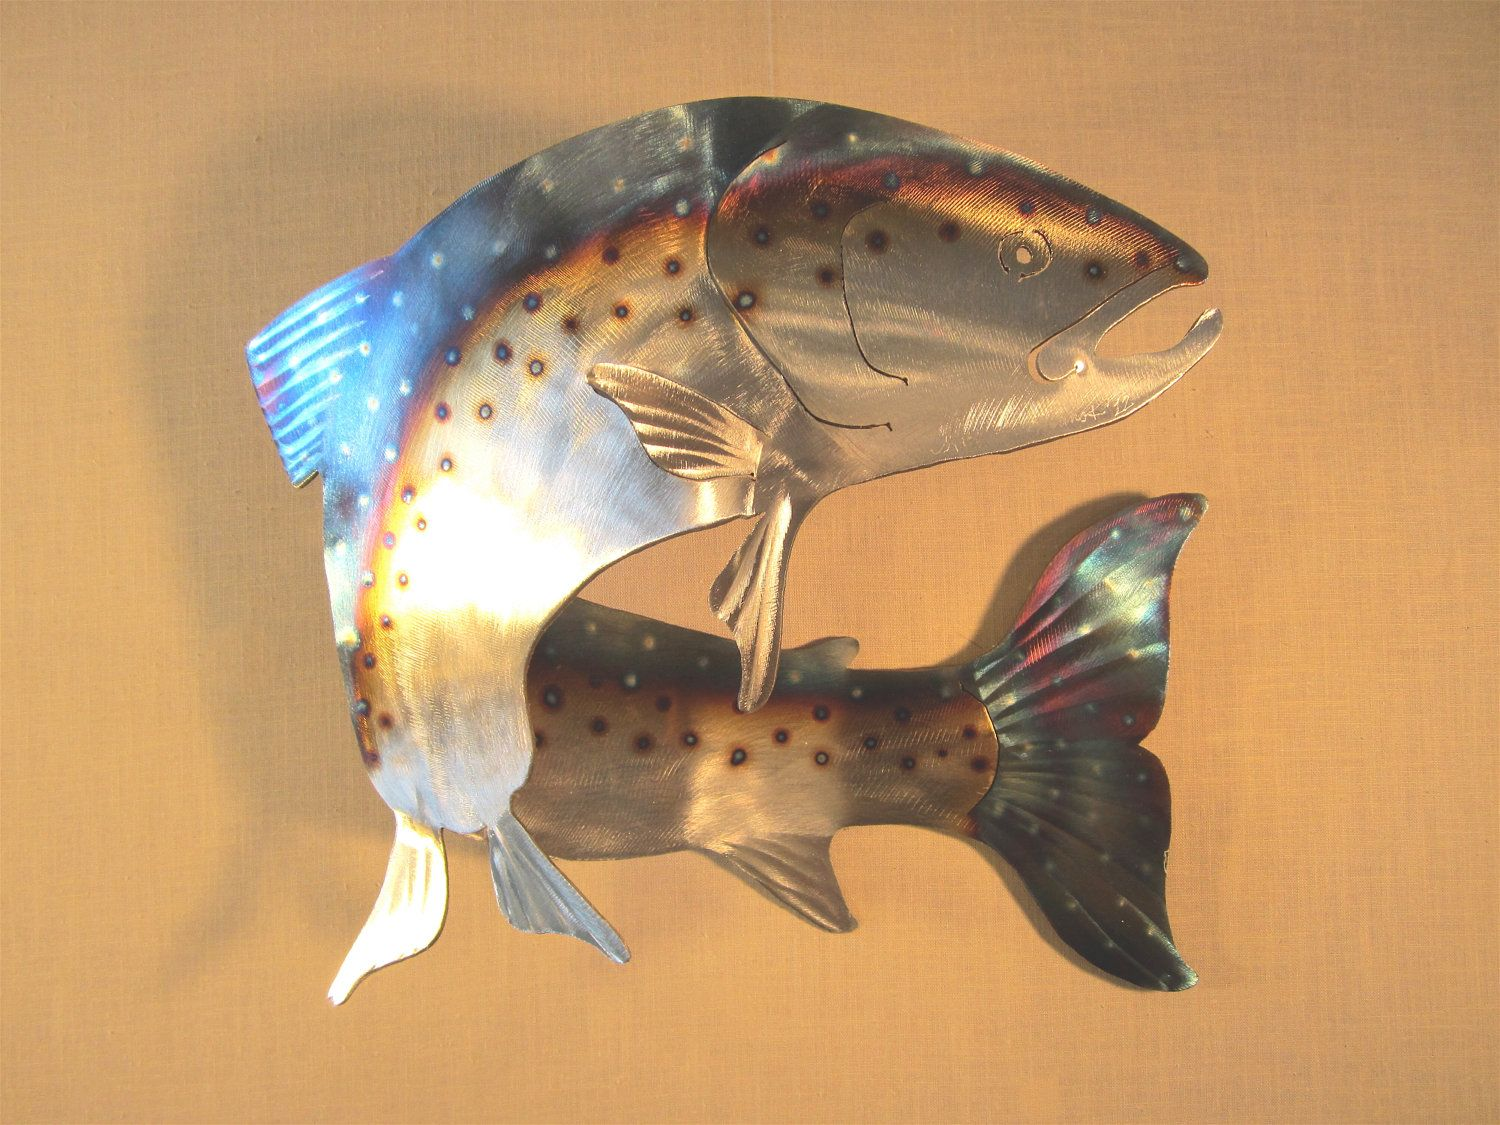 Fishing decorations for home salmon steelhead spawning fish fly fishing decorations for home salmon steelhead spawning fish fly fishing fisherman swimming stream amipublicfo Gallery